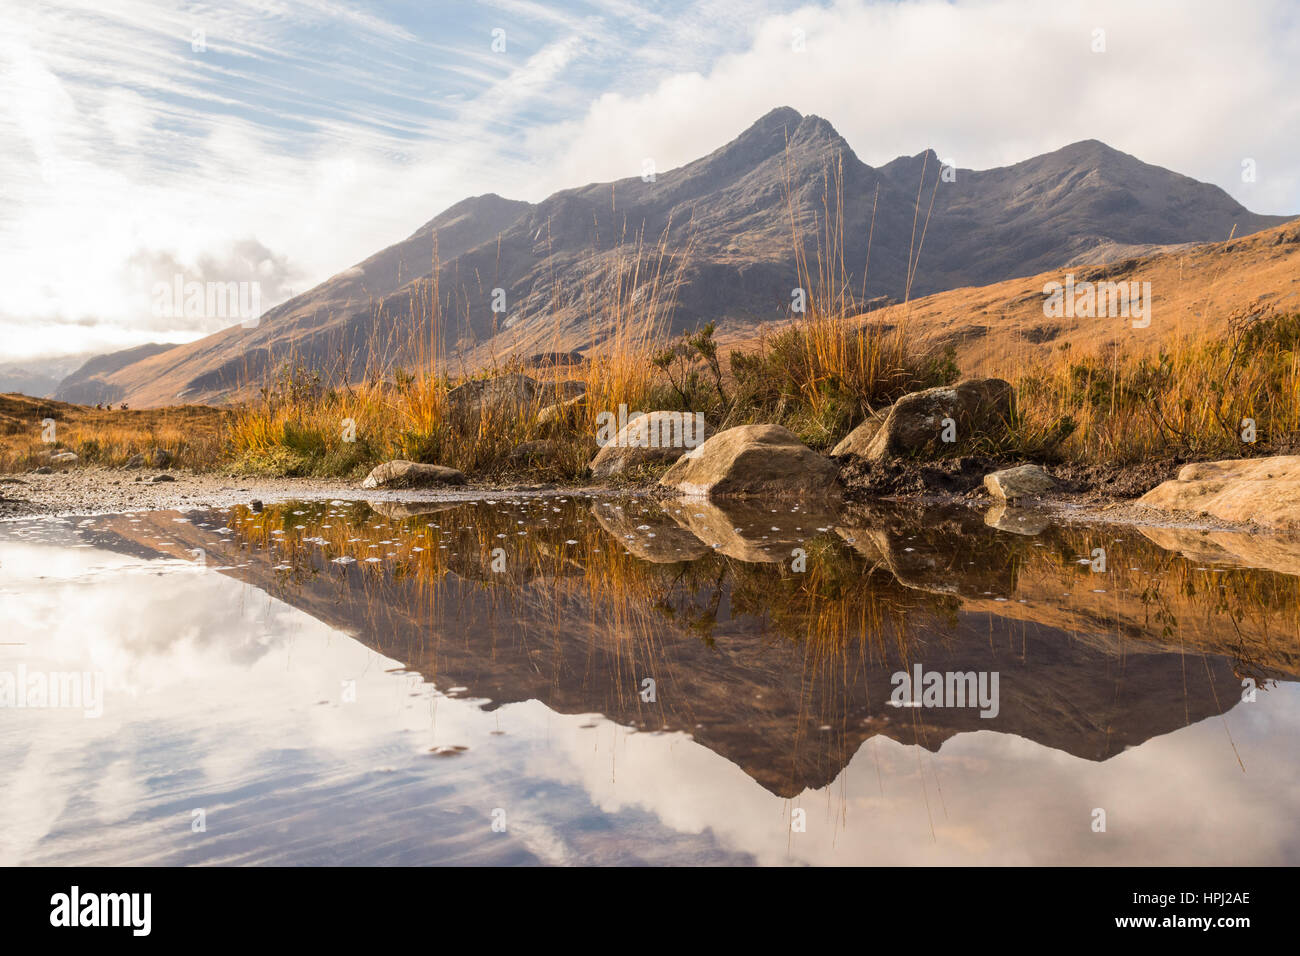 The Cuillins - Sgurr nan Gillean, Glen Sligachan, Isle of Skye, Scotland - reflected in puddle on footpath in autumn - Stock Image